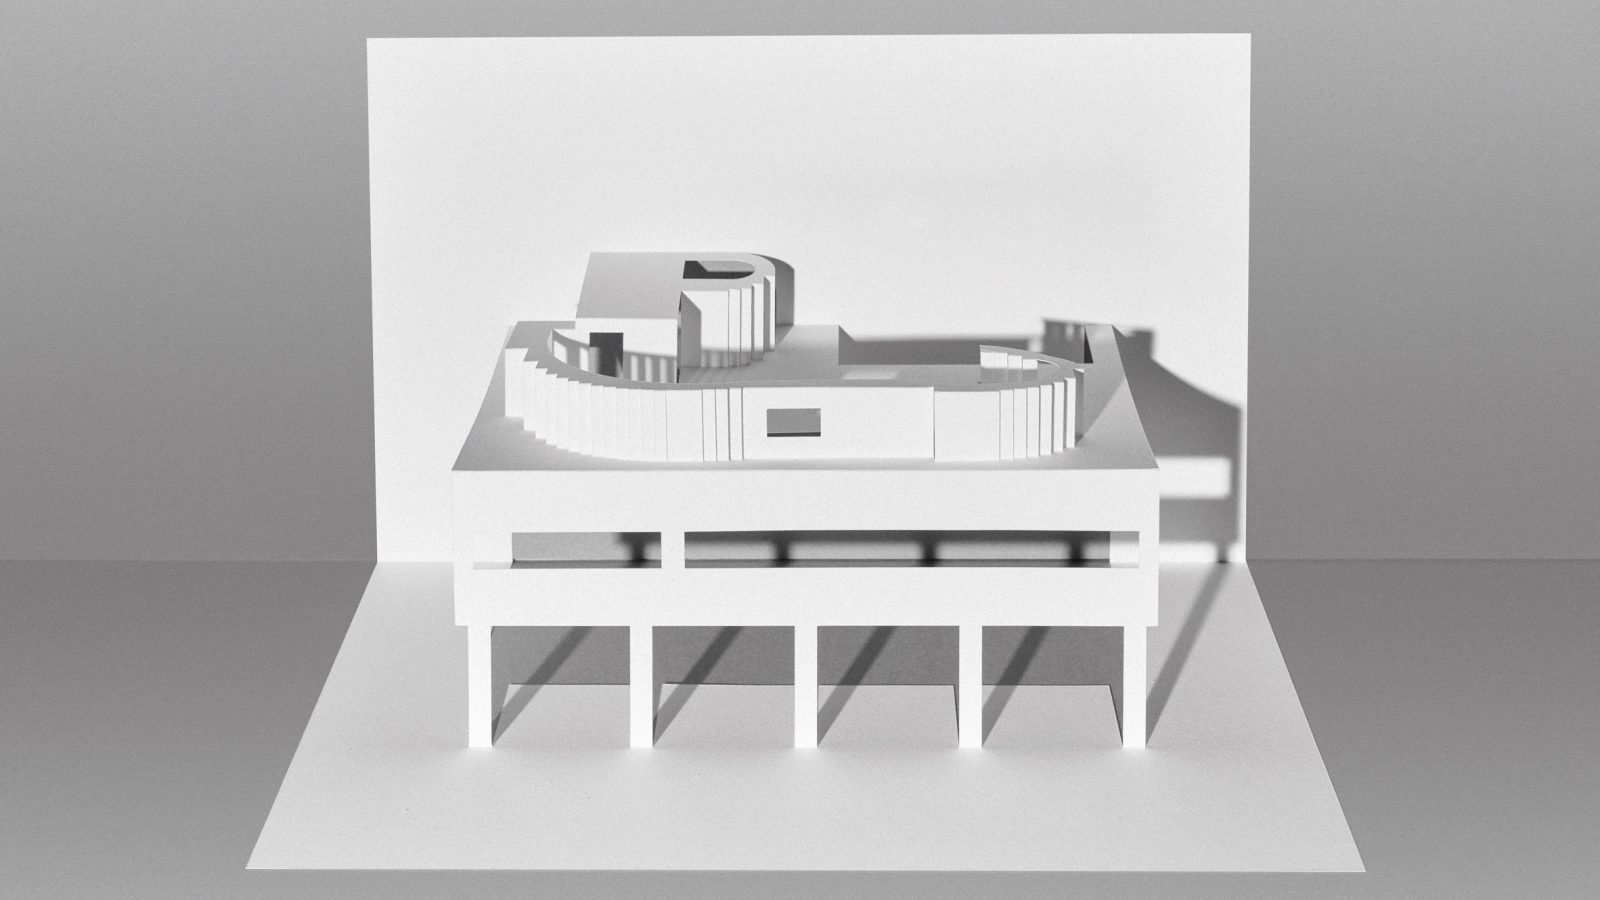 Le Corbusier Paper Models 10 Kirigami Buildings To Cut And Fold Design Paper